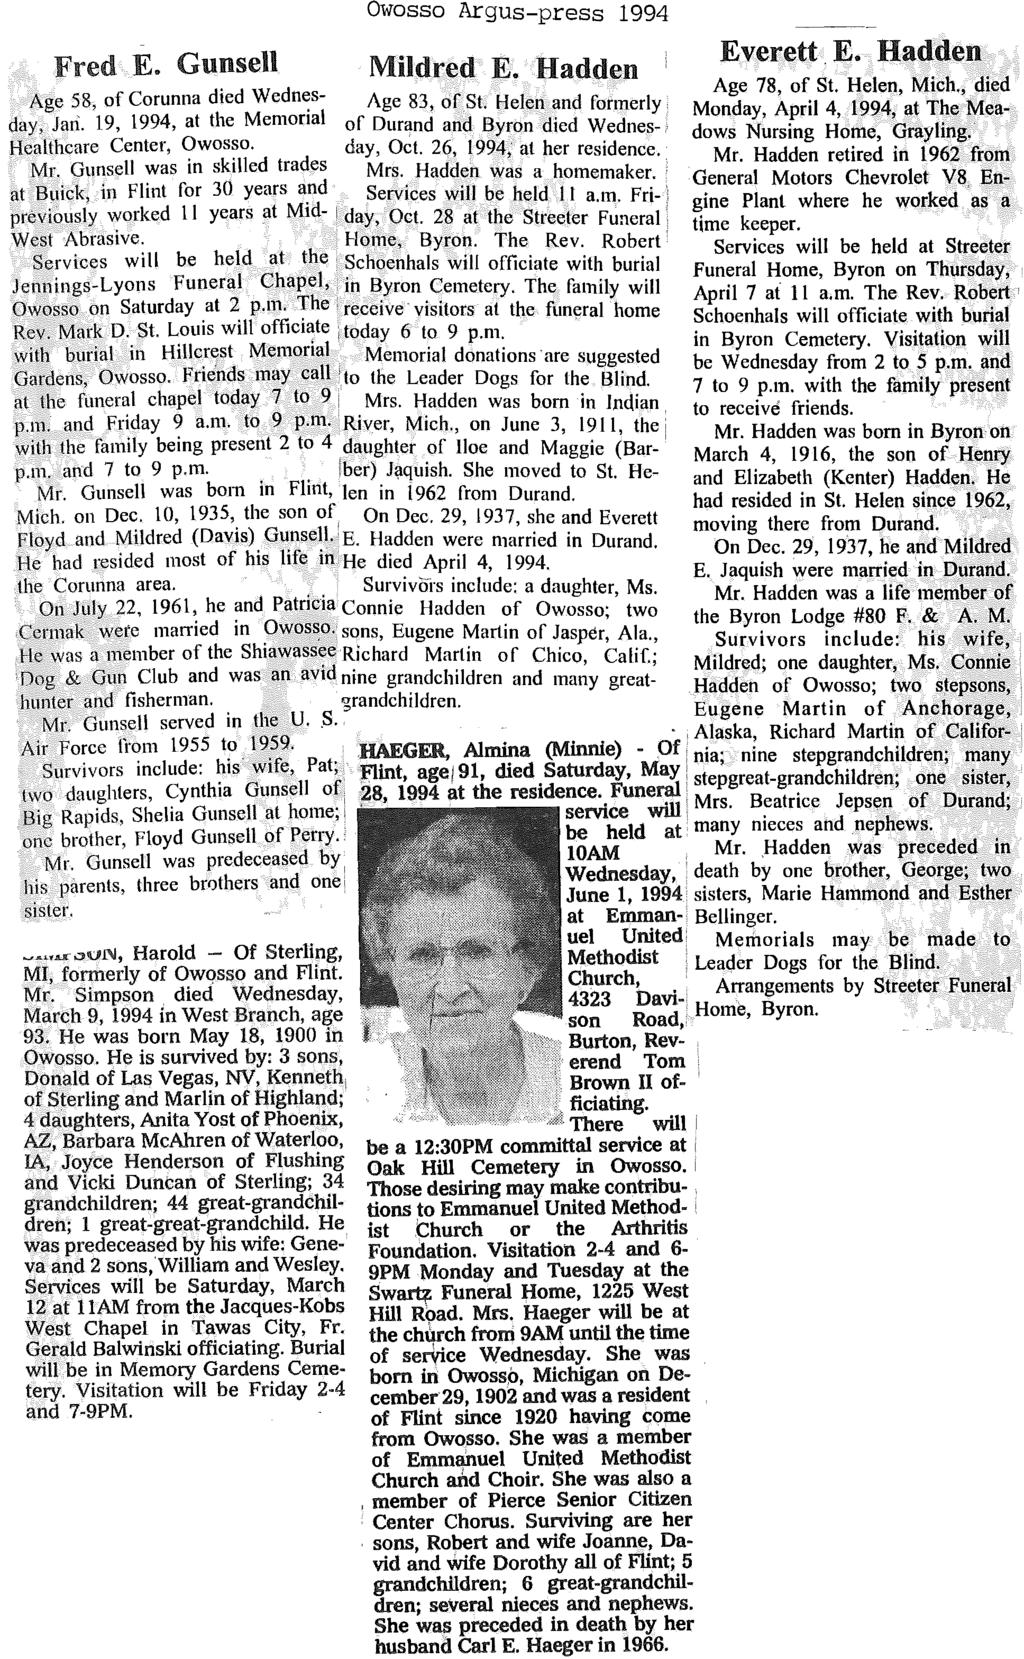 72 Fred E. GunseU Owosso Argus-press 1994 Mildred E. Hadden Everett. E. Hadden Age 78, of Sf. Helen, Mich., died Age 58, of Corunna died Wedn~s- Age 83, of St.